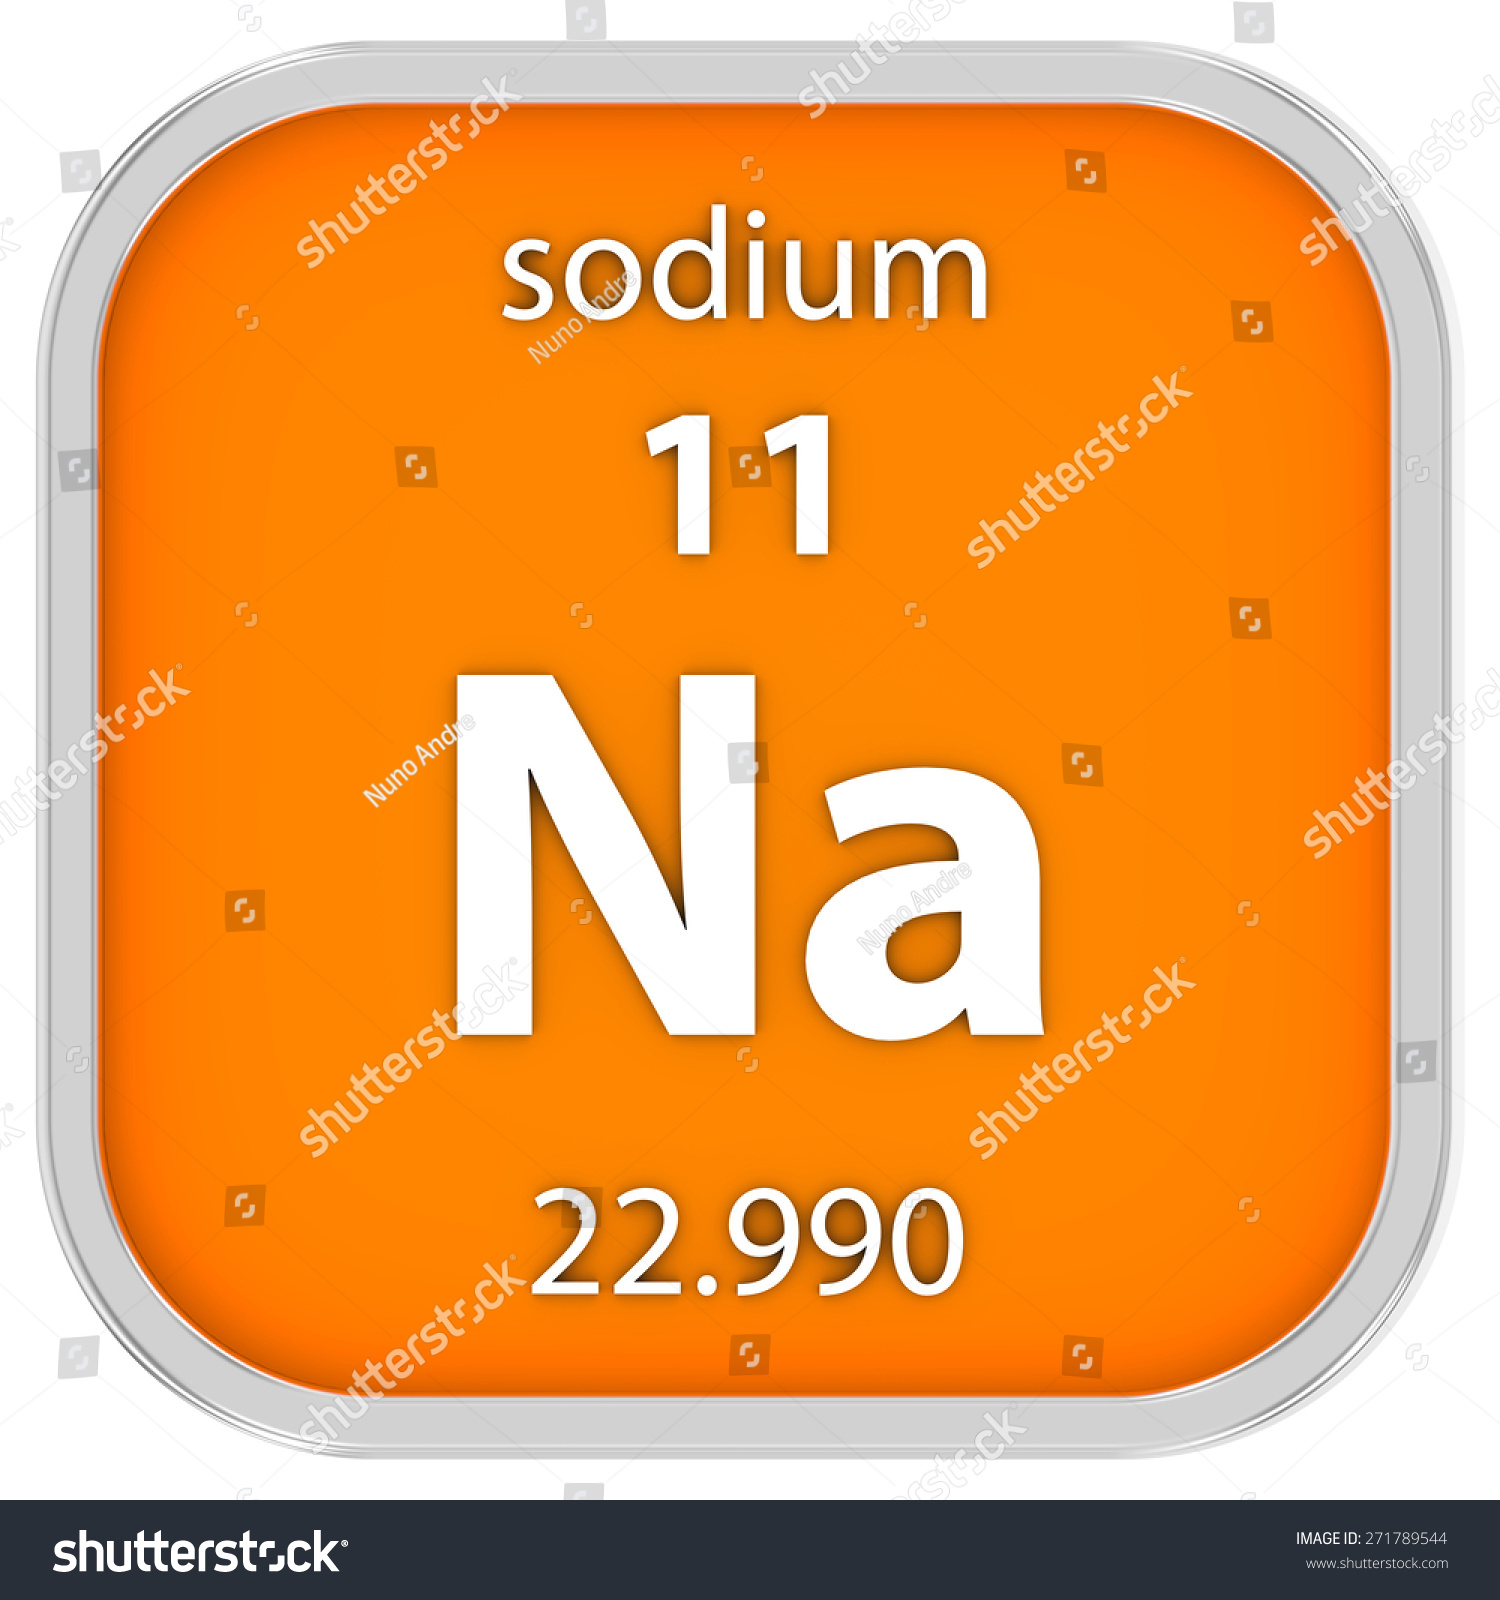 The periodic table sodium gallery periodic table images sodium material on periodic table part stock illustration sodium material on the periodic table part of gamestrikefo Image collections